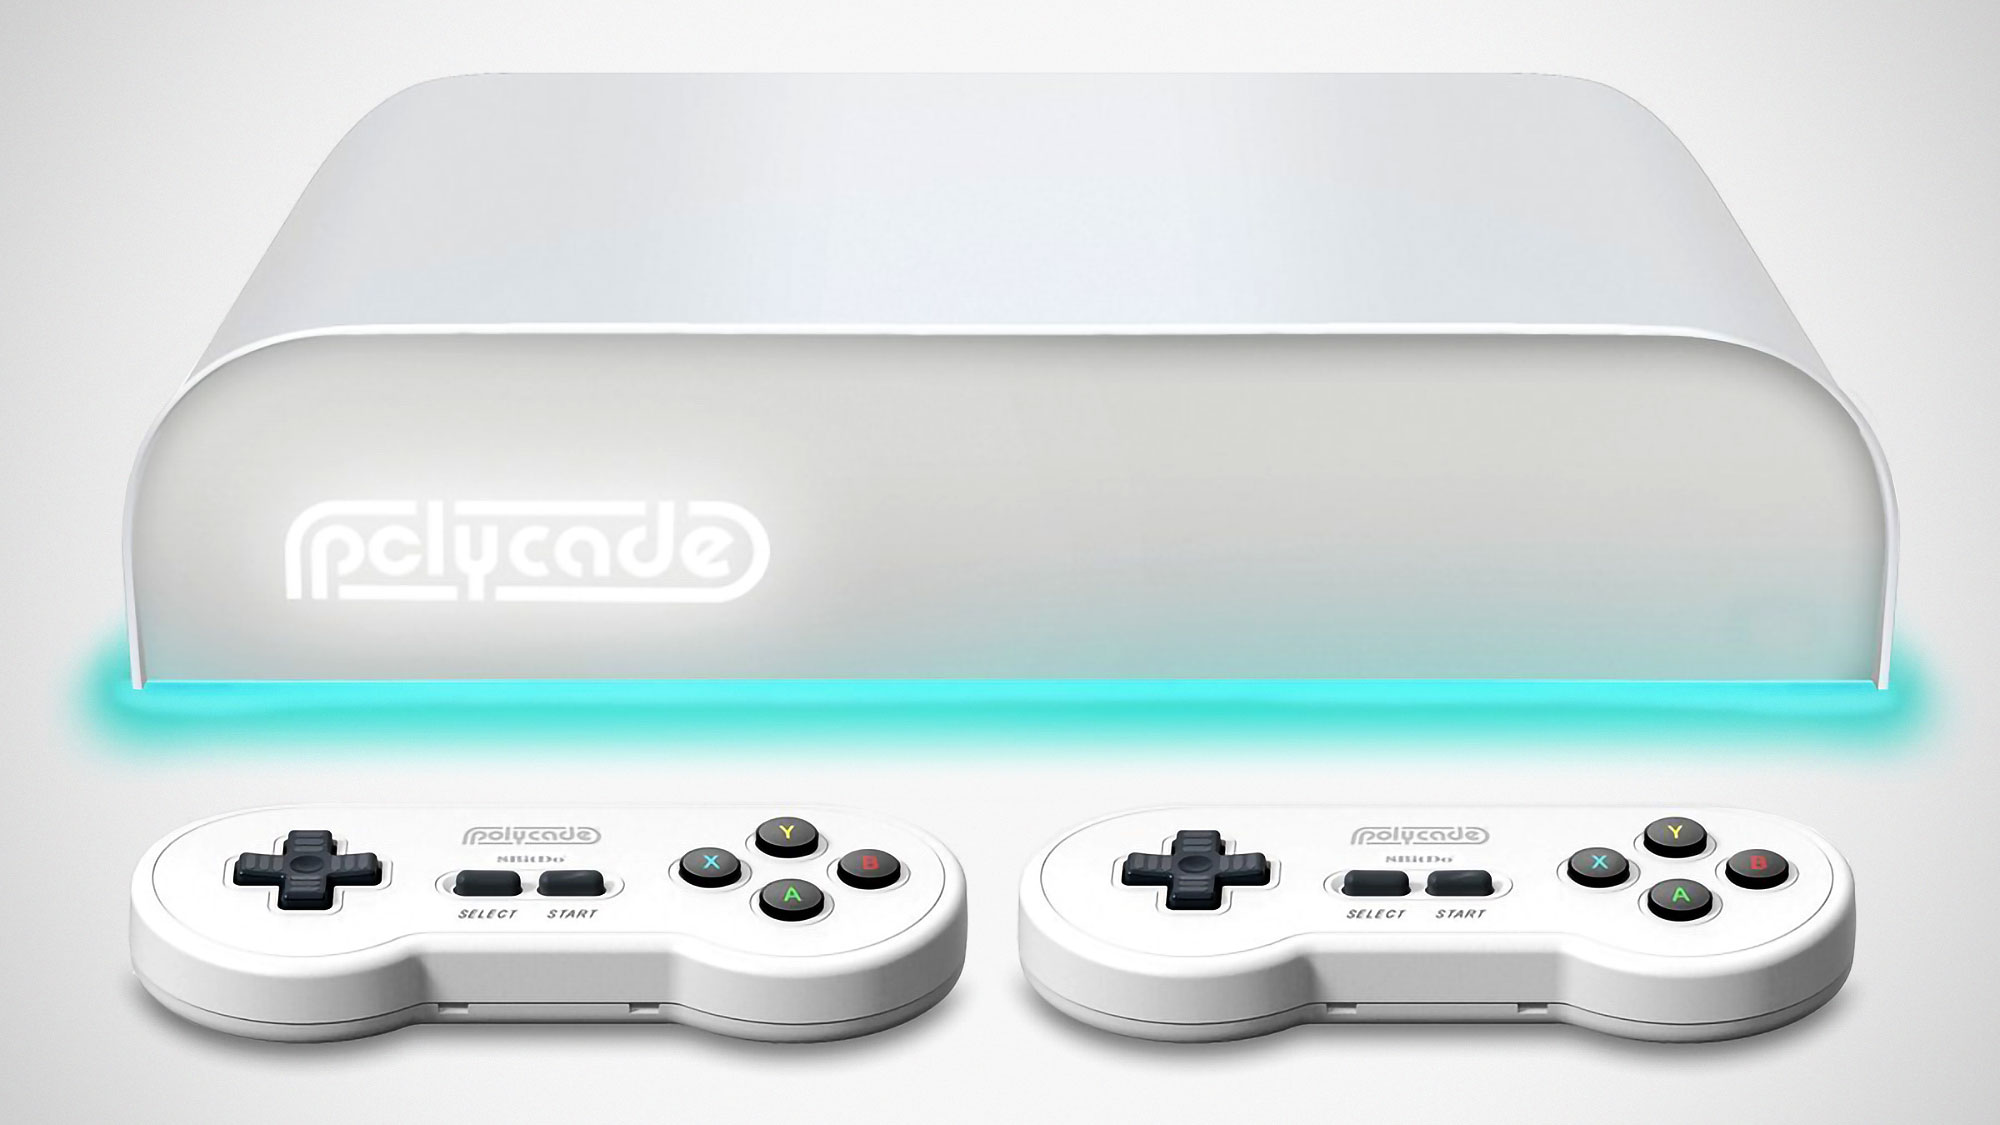 Polycade 2600 PC Game Console